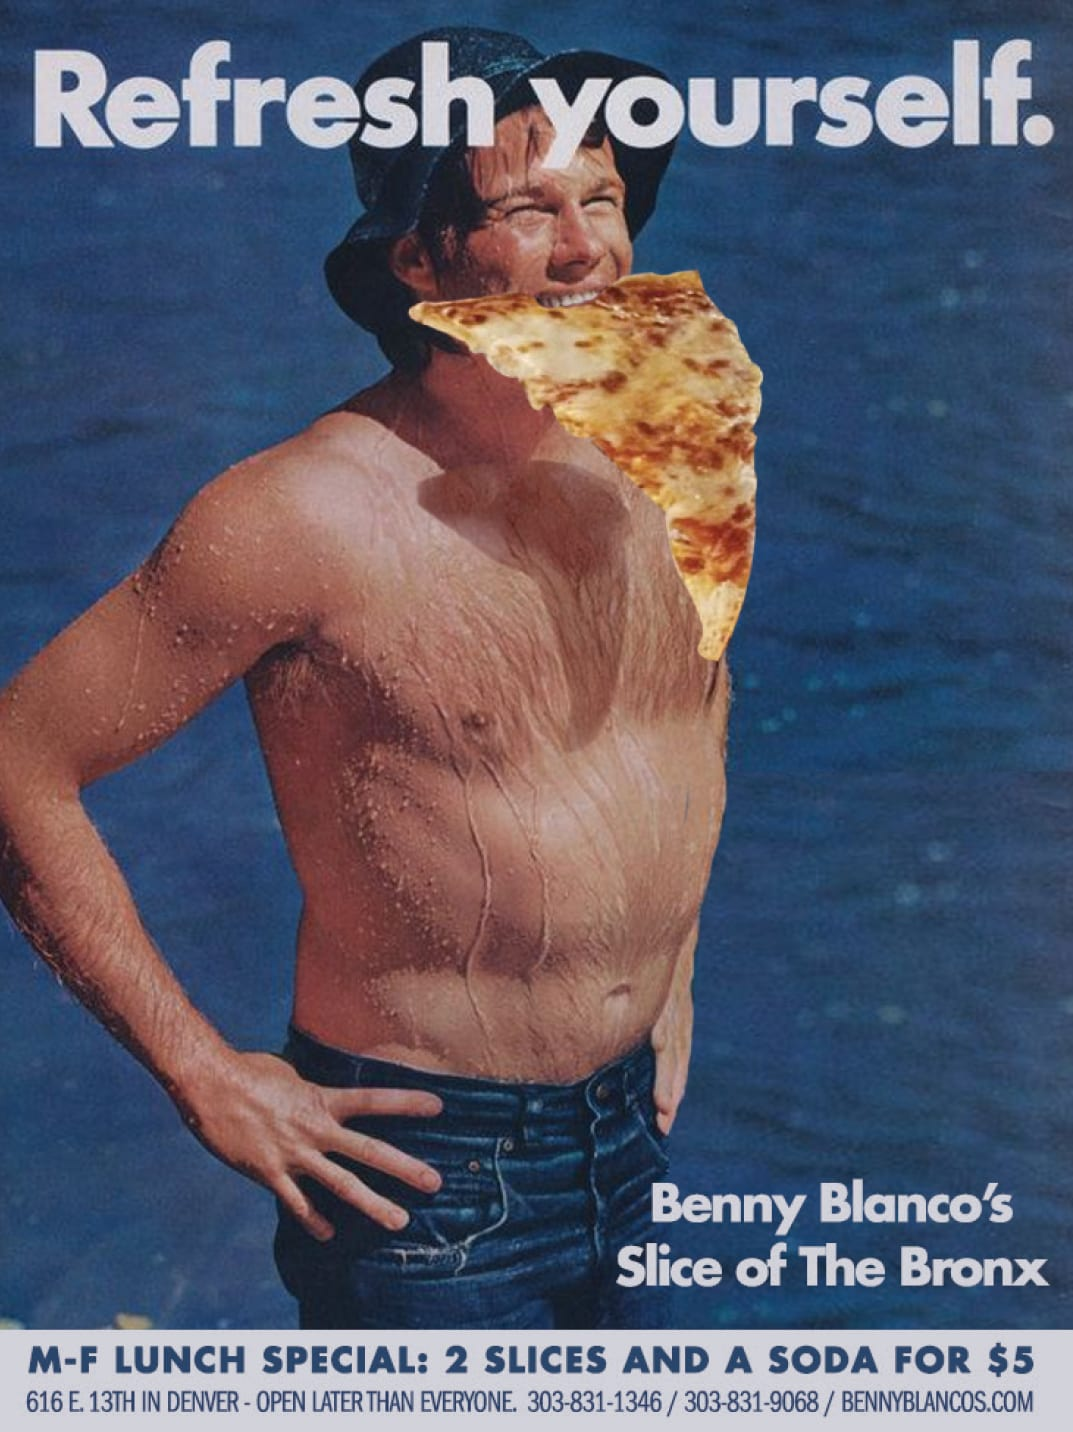 Benny Blancos pizza by the ocean